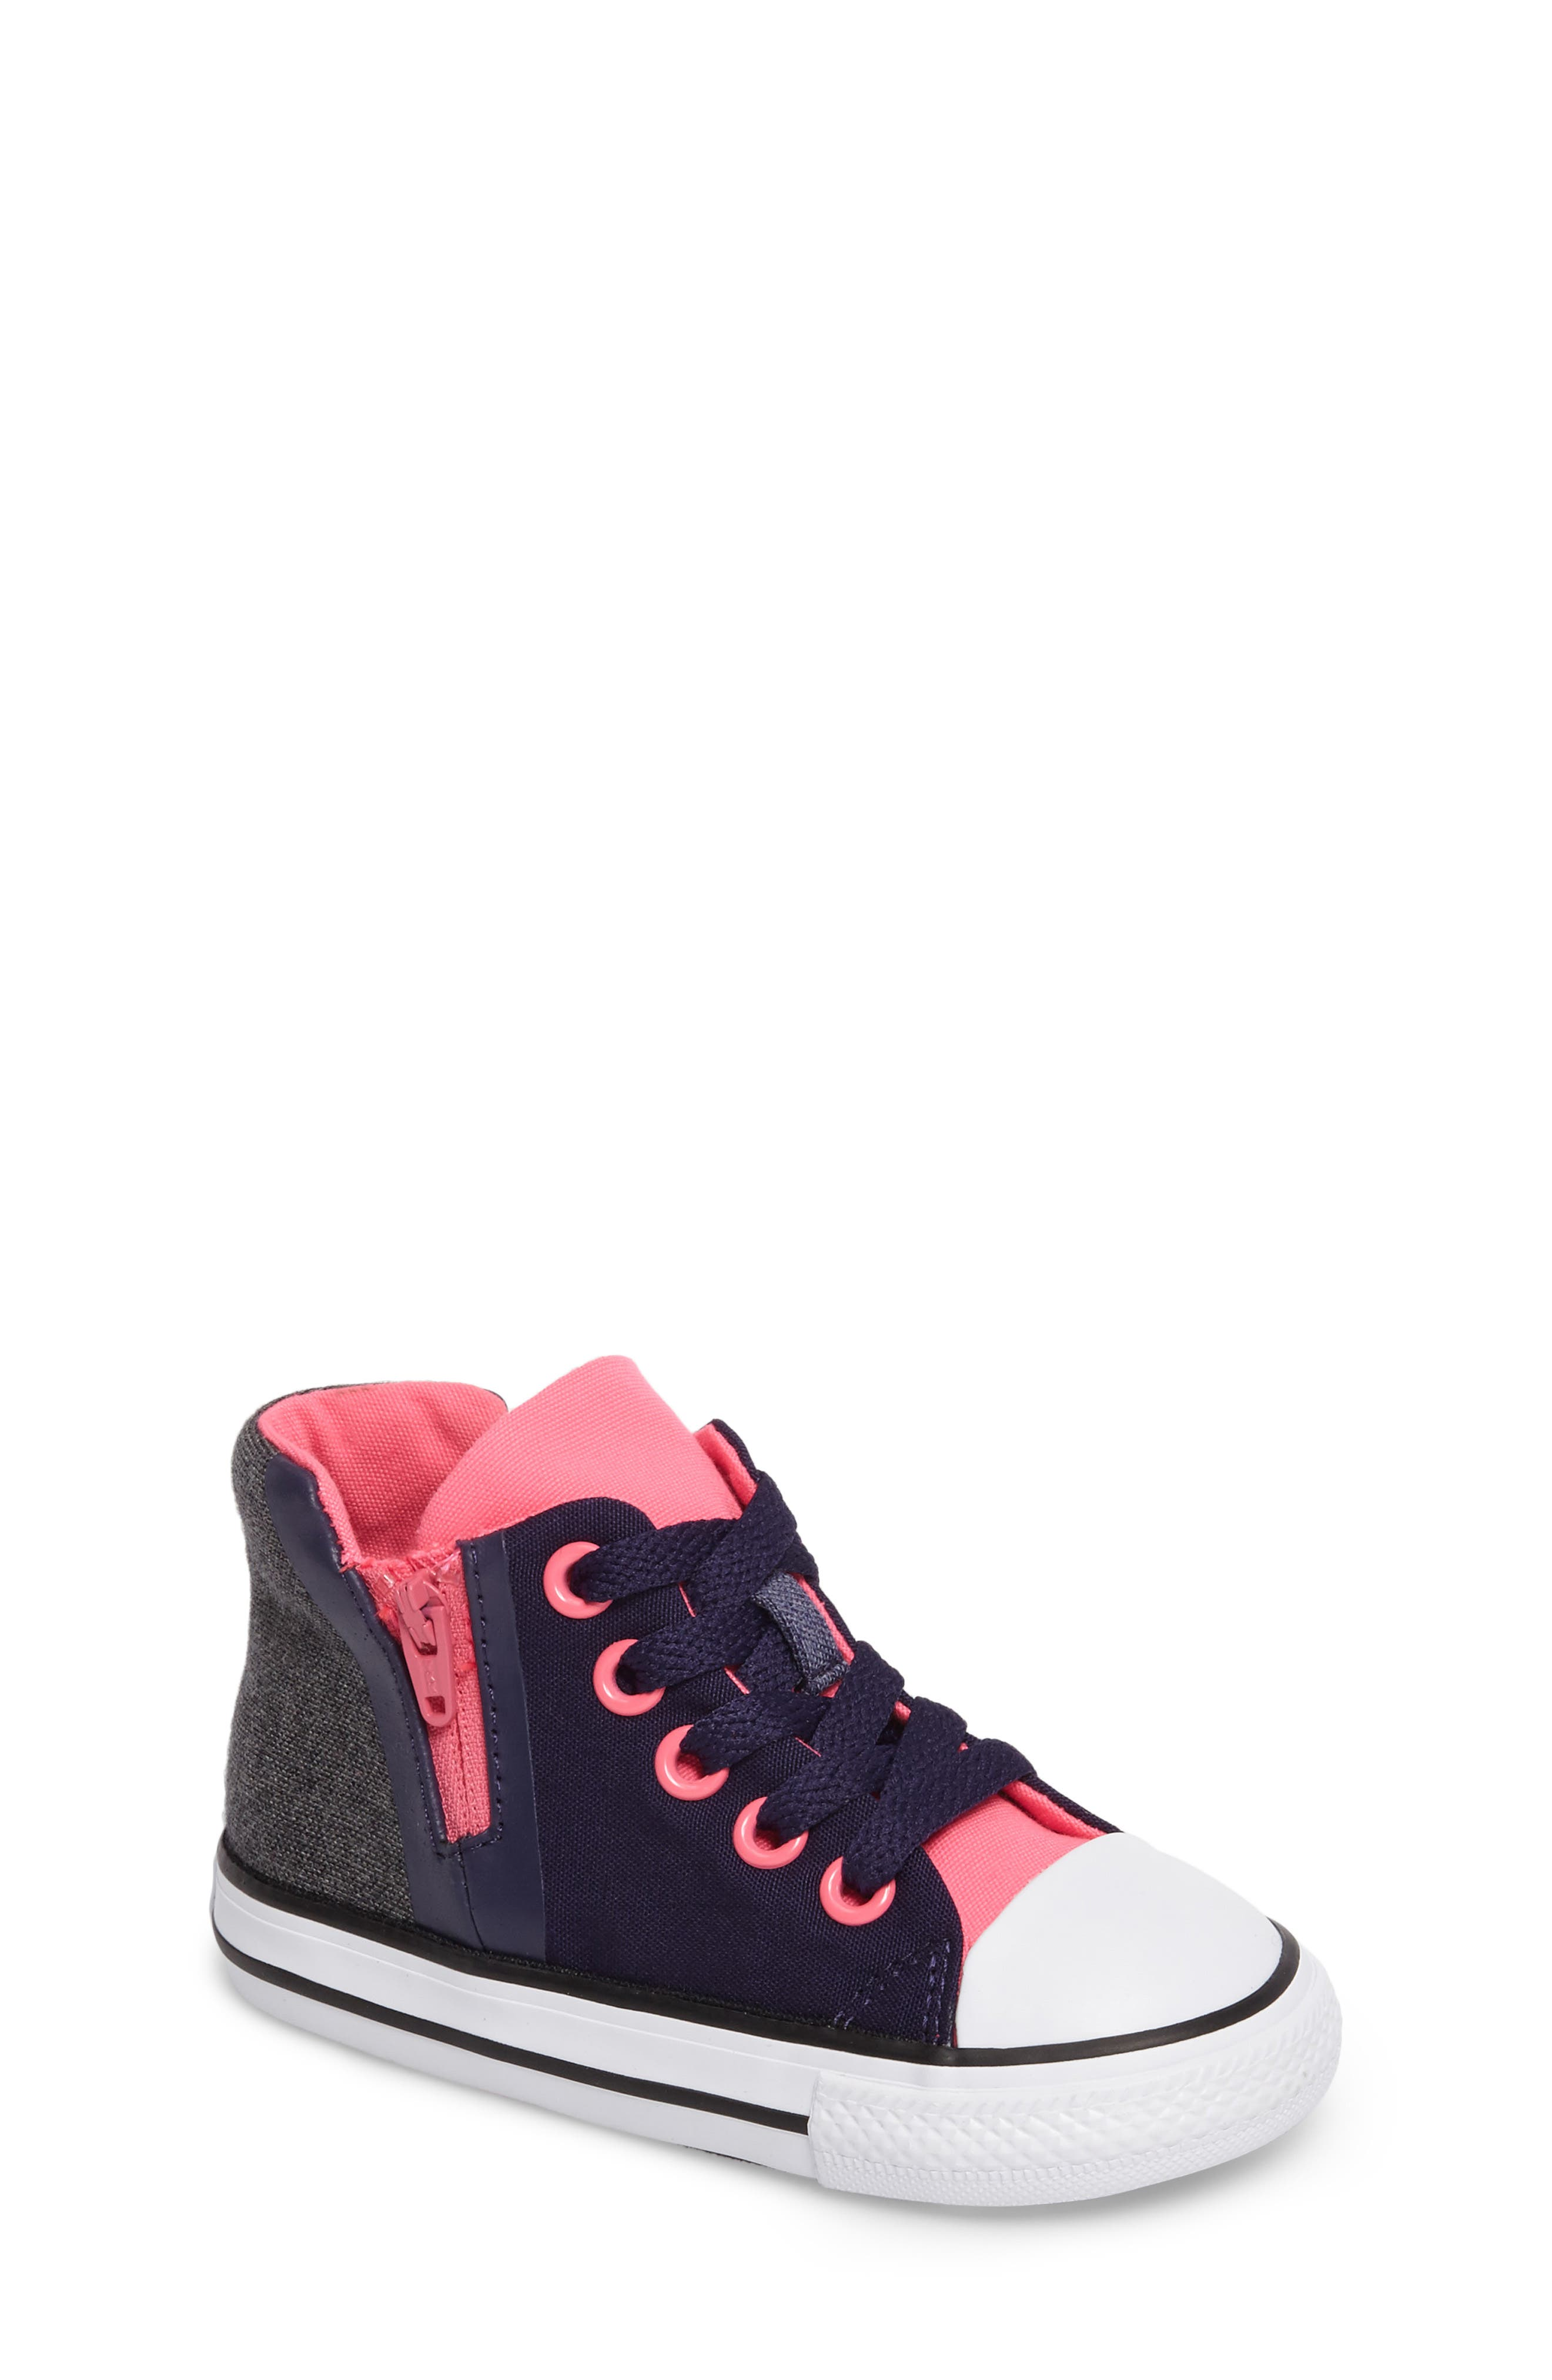 Alternate Image 1 Selected - Converse Chuck Taylor® All Star® Sport Zip High Top Sneaker (Baby, Walker, Toddler, Little Kid & Big Kid)